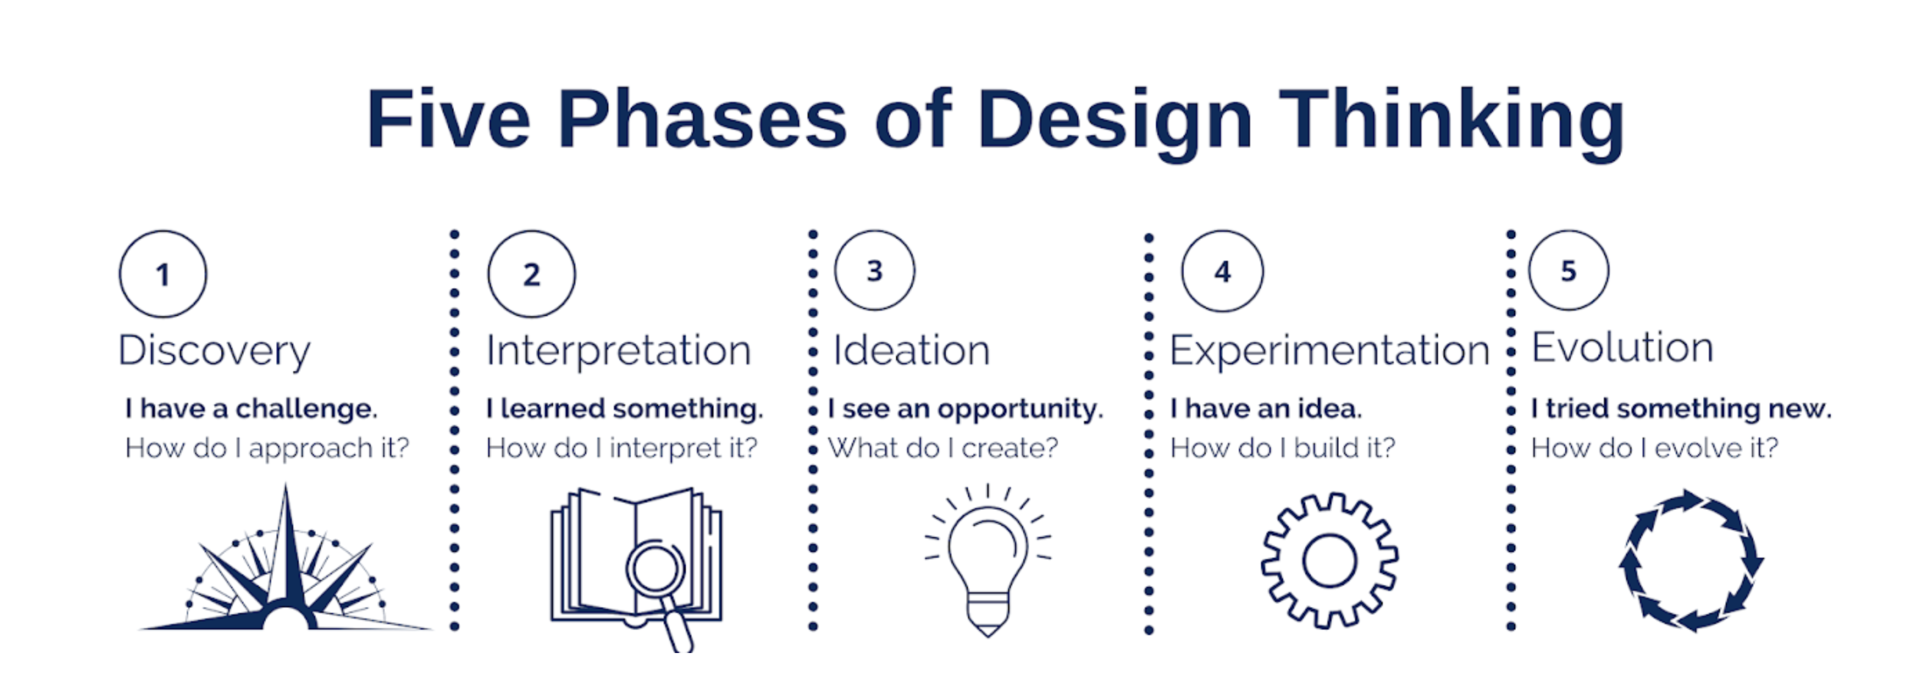 The 5 Phases of Design Thinking